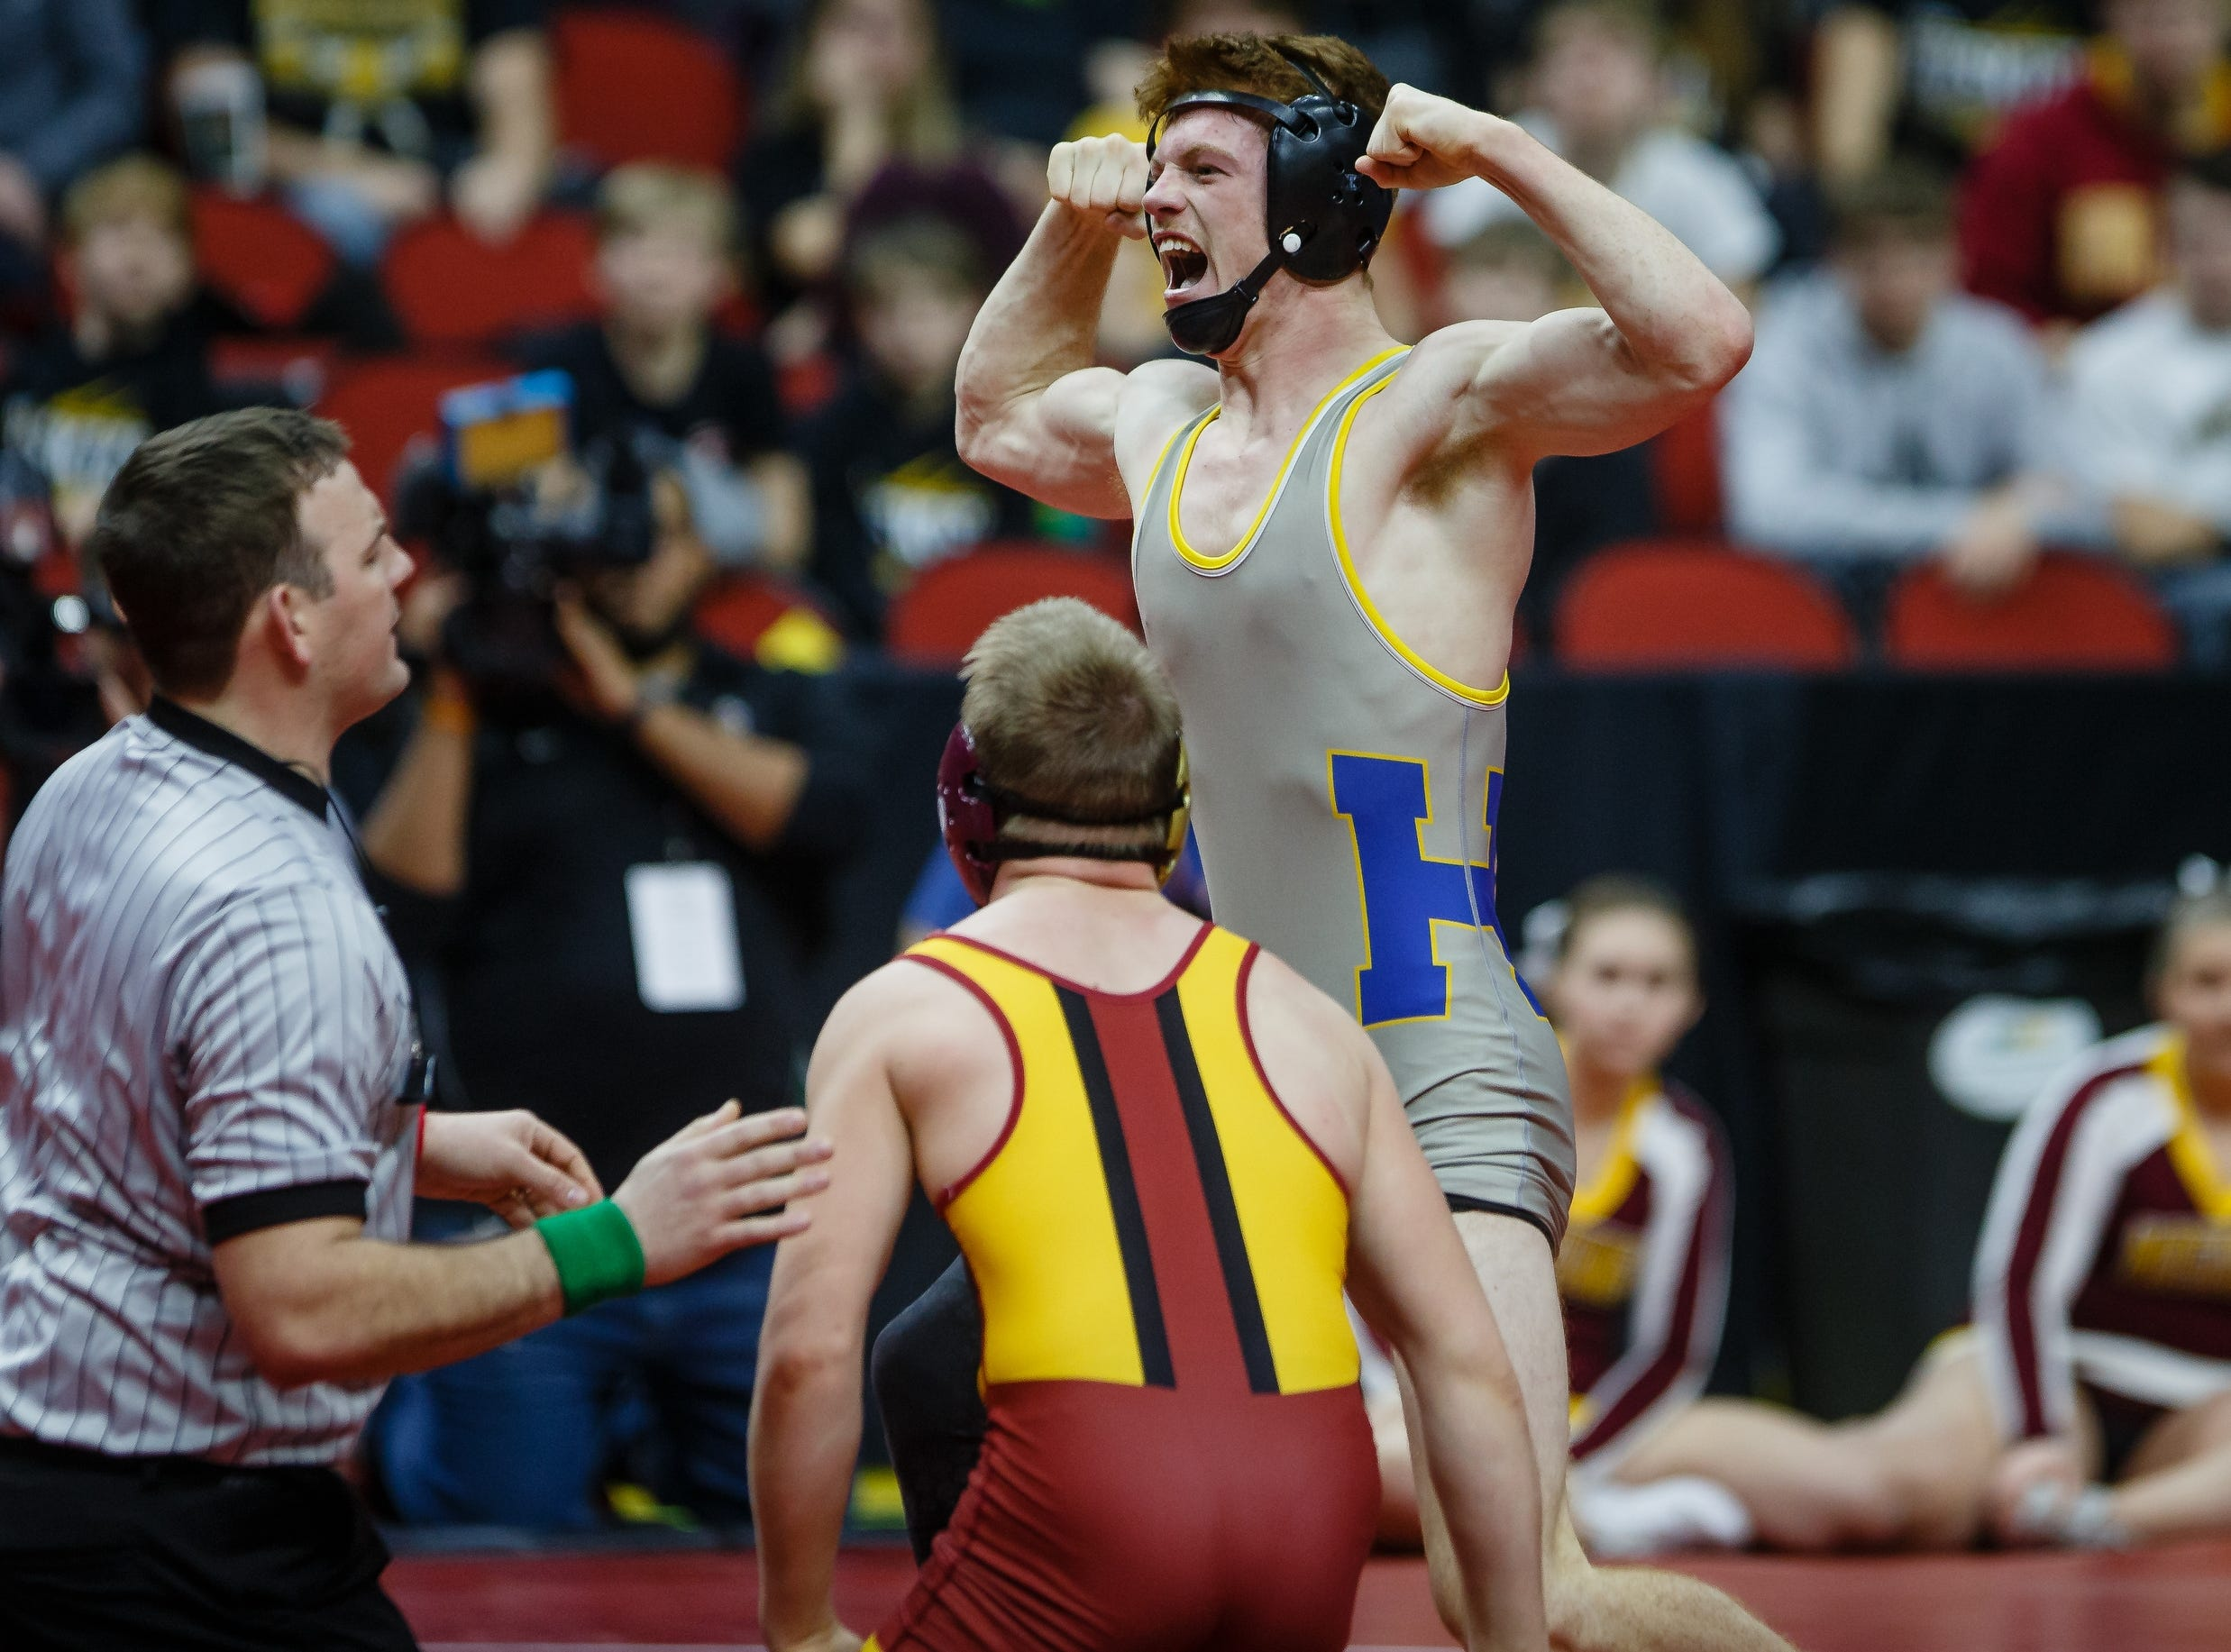 Joey Busse of Humbolt reacts after defeating Colby Tool of PCM during their class 2A, 145-pound state championship semifinal match on Friday  in Des Moines.